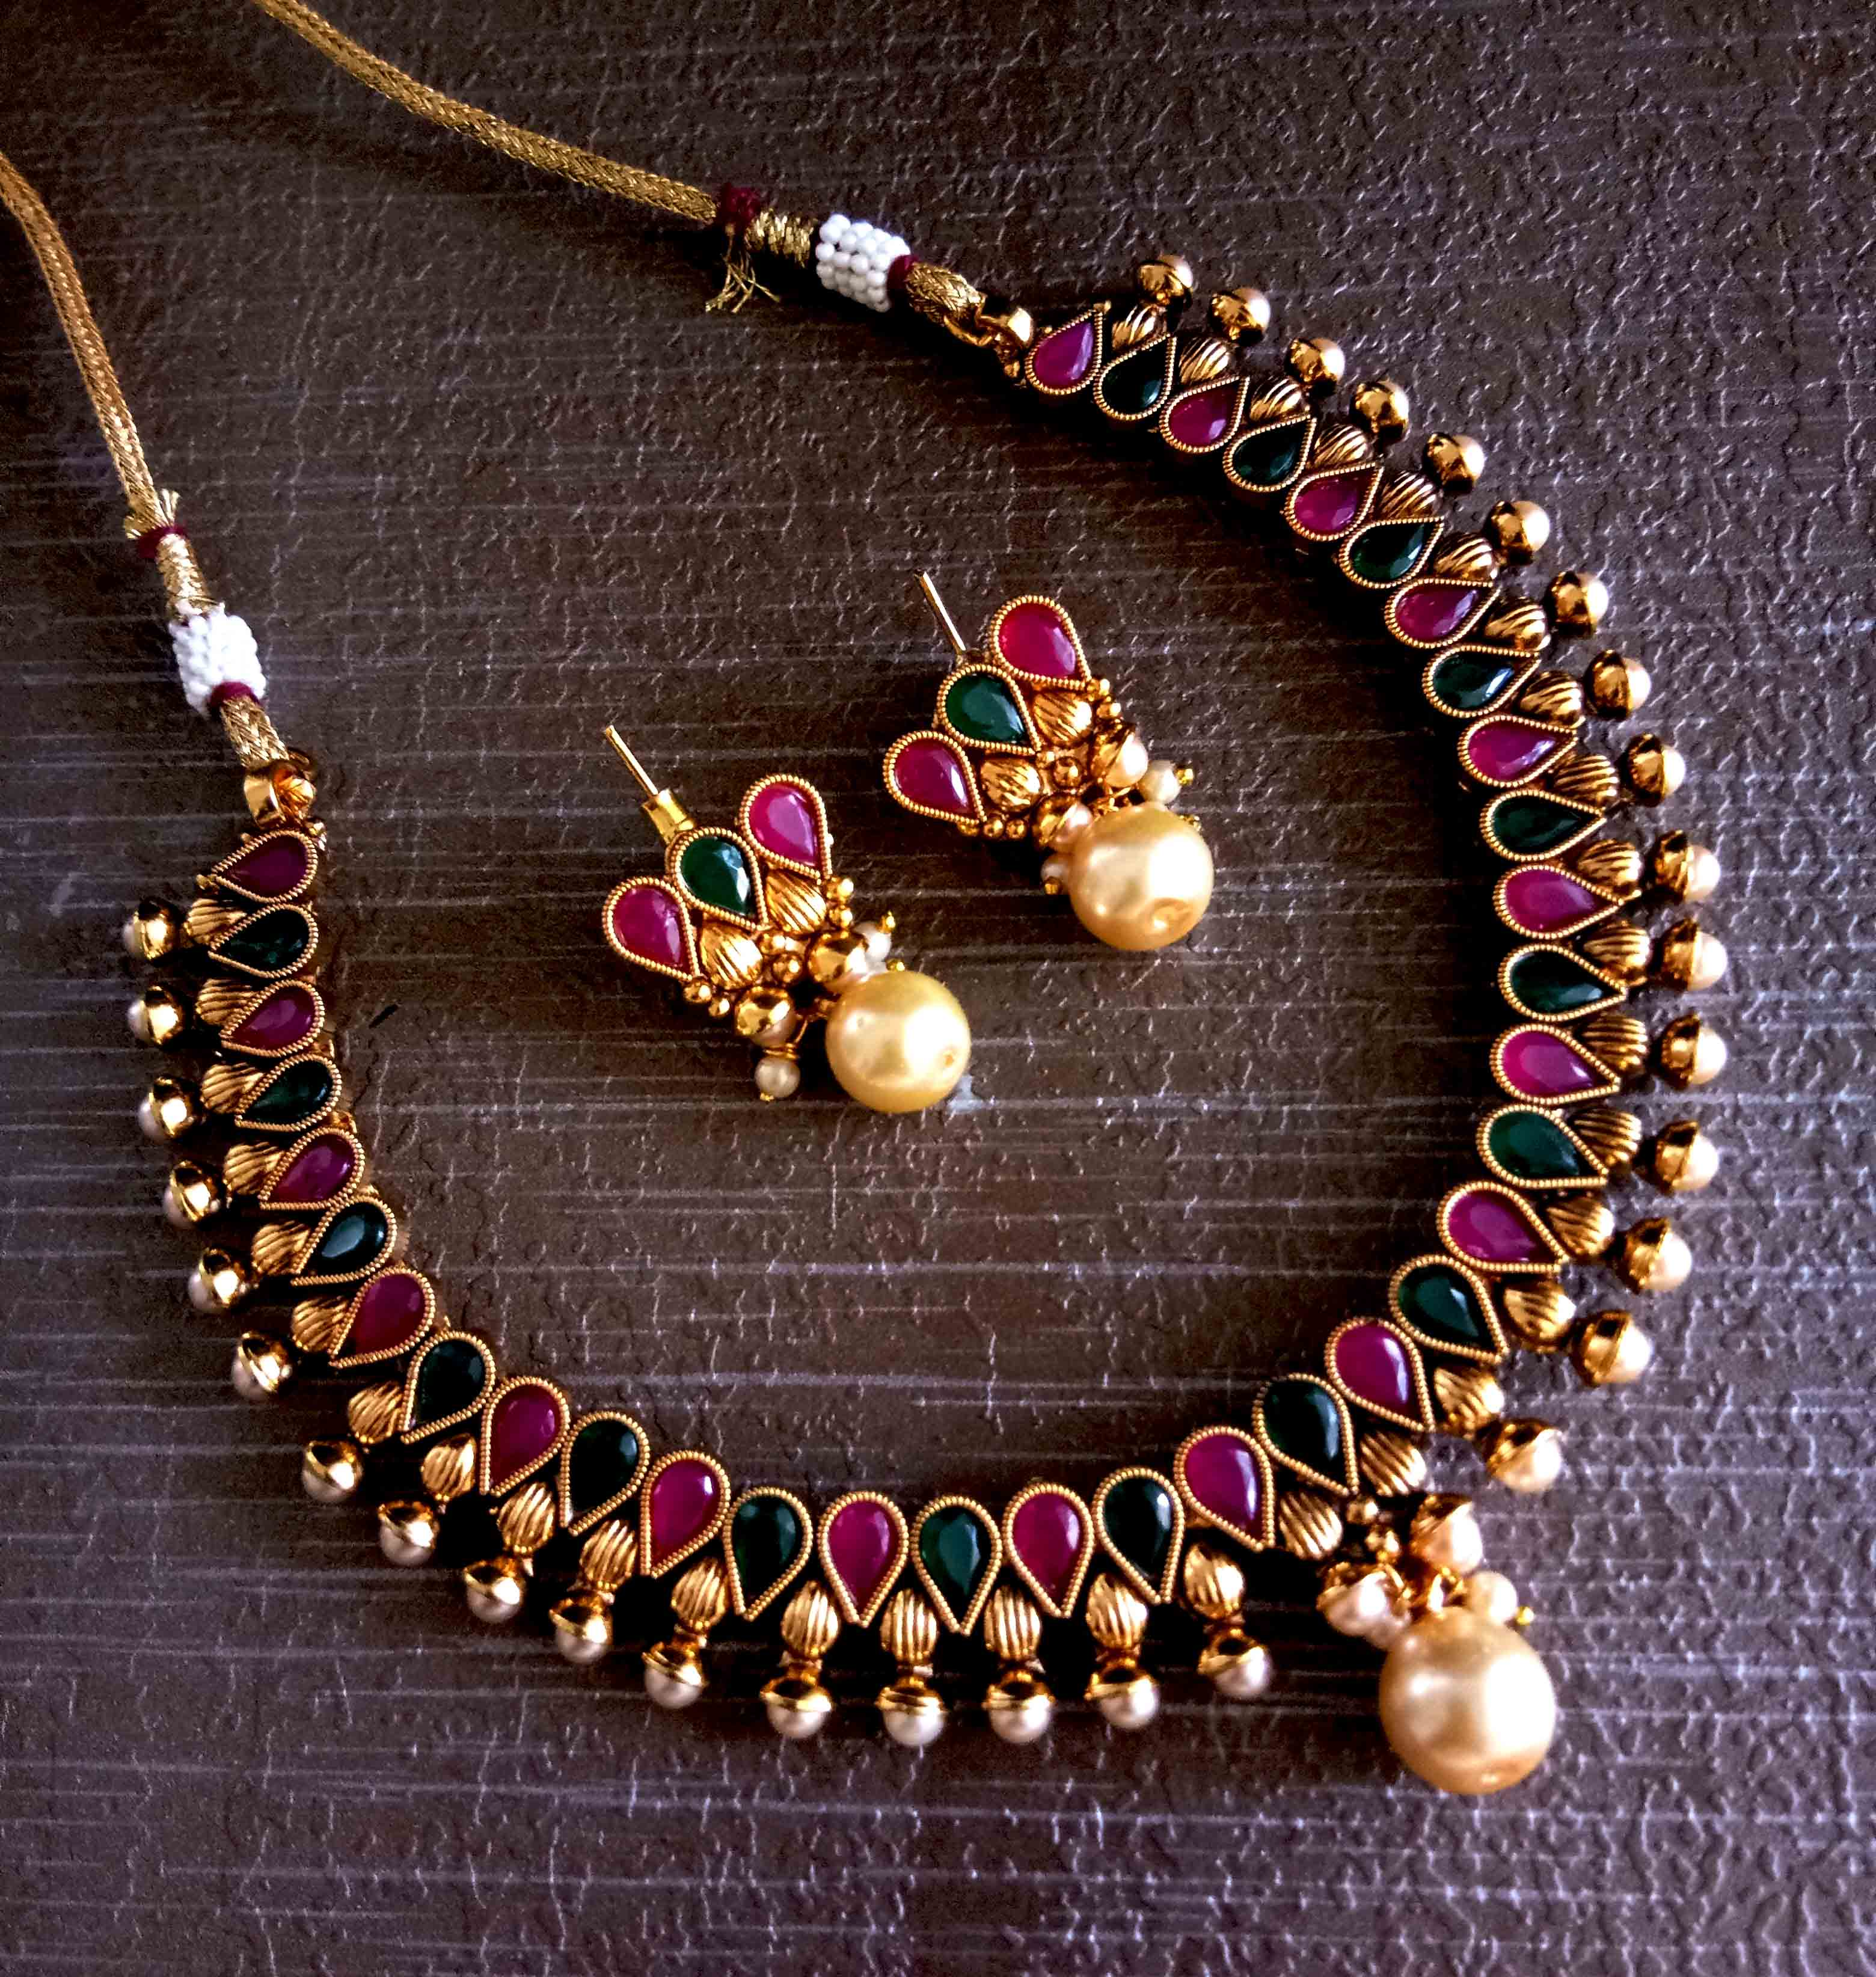 d59d5c09b Designer Bollywood Inspired Pink & Green Kundan Jewellery Necklace Set With  Earrings For Women - Satyam Jewellery NX - 2665024